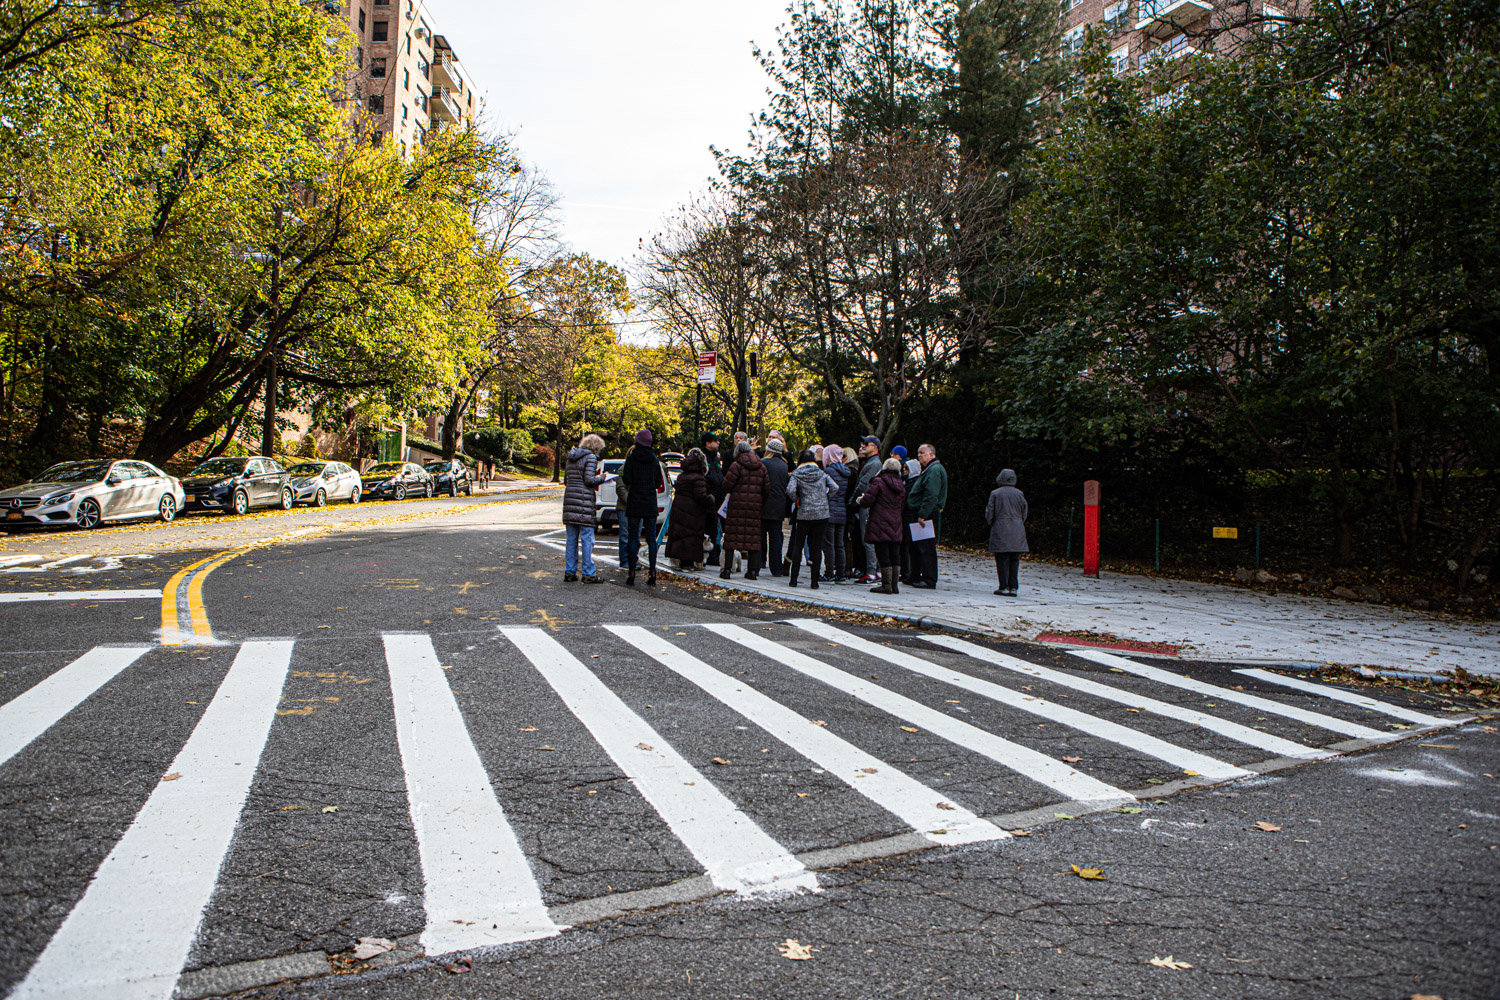 Community members met Nov. 9 with DOT's Bronx borough commissioner Nivardo Lopez at the intersection of Kappock Street and Palisade Avenue where curb extensions have earned the ire of drivers and pedestrians alike.